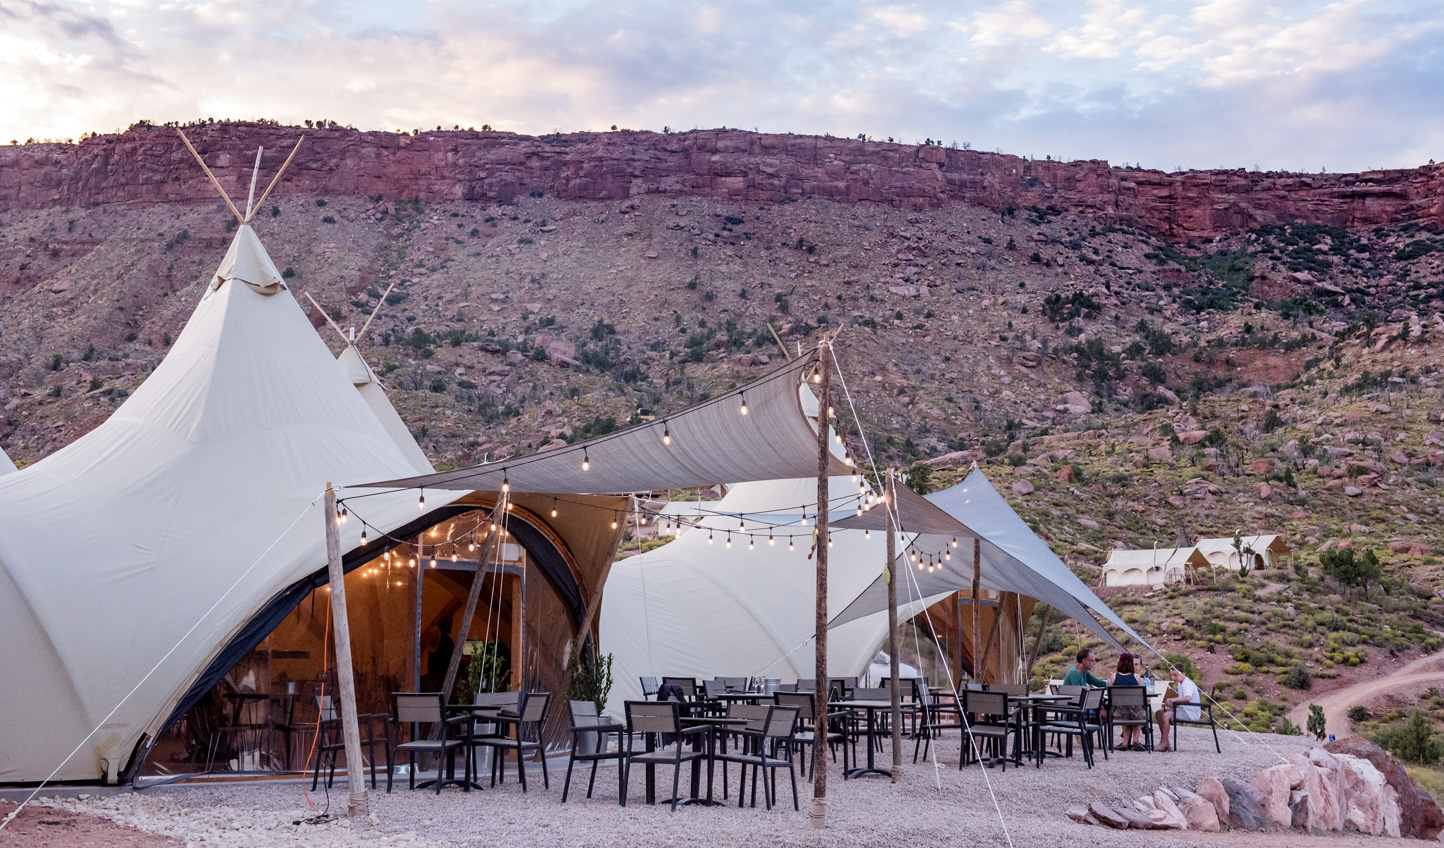 Dine out in the wilderness at Under Canvas